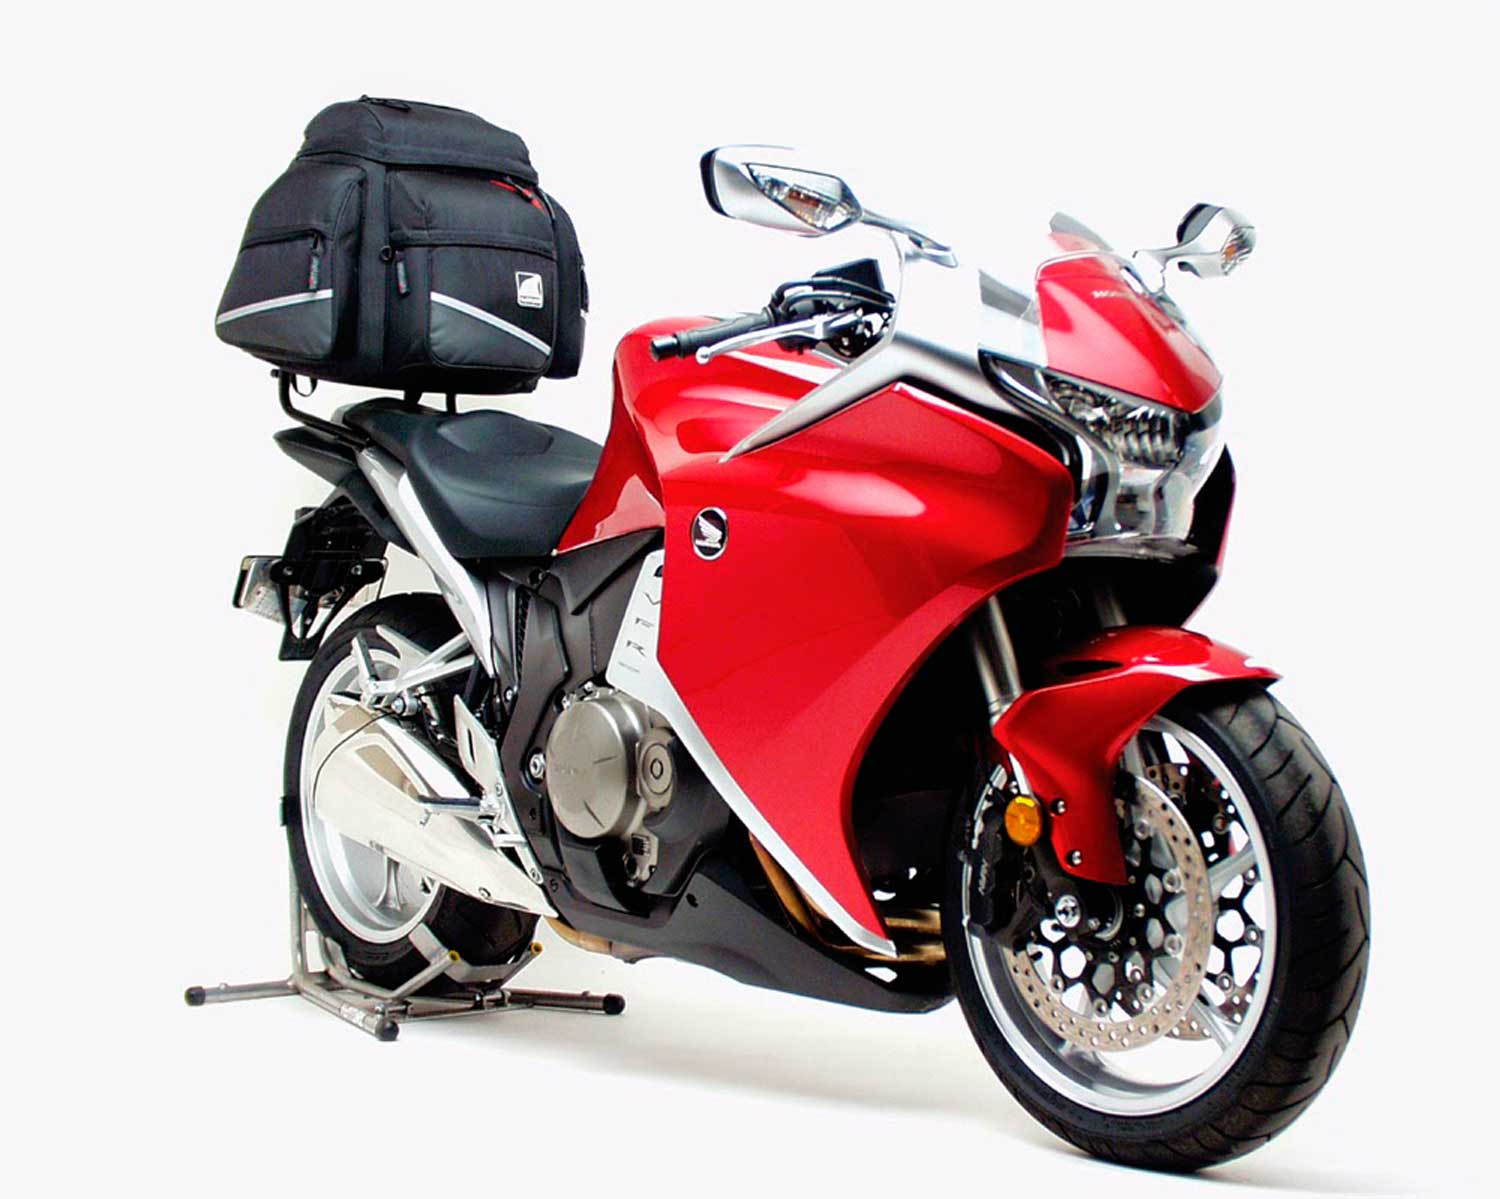 Honda VFR800F luggage